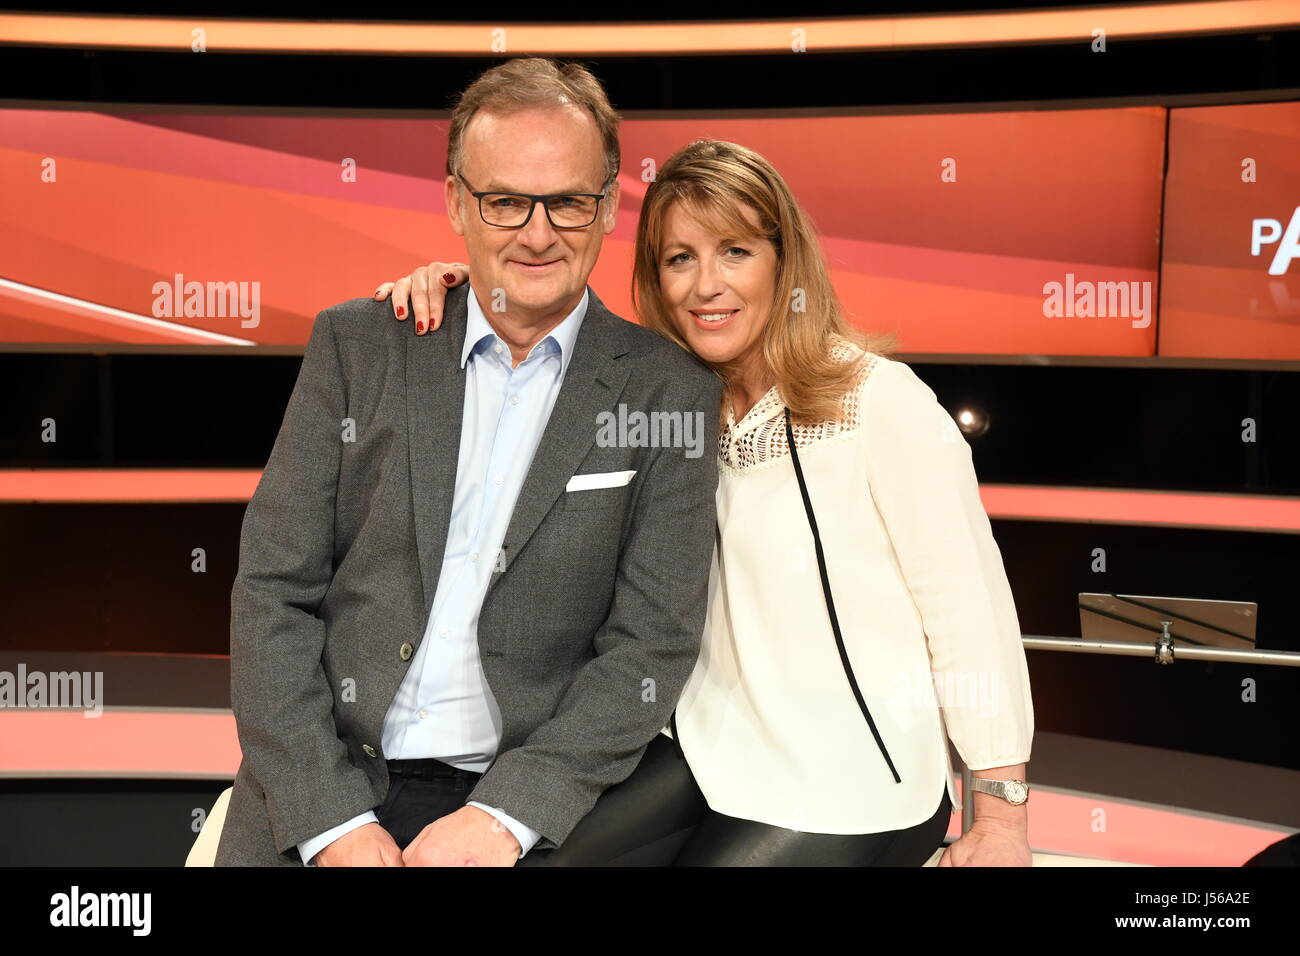 Presenters Frank Plasberg and Anne Gesthuysen on the set of the German TV show 'Couple's Duel' in Huerth - Stock Image